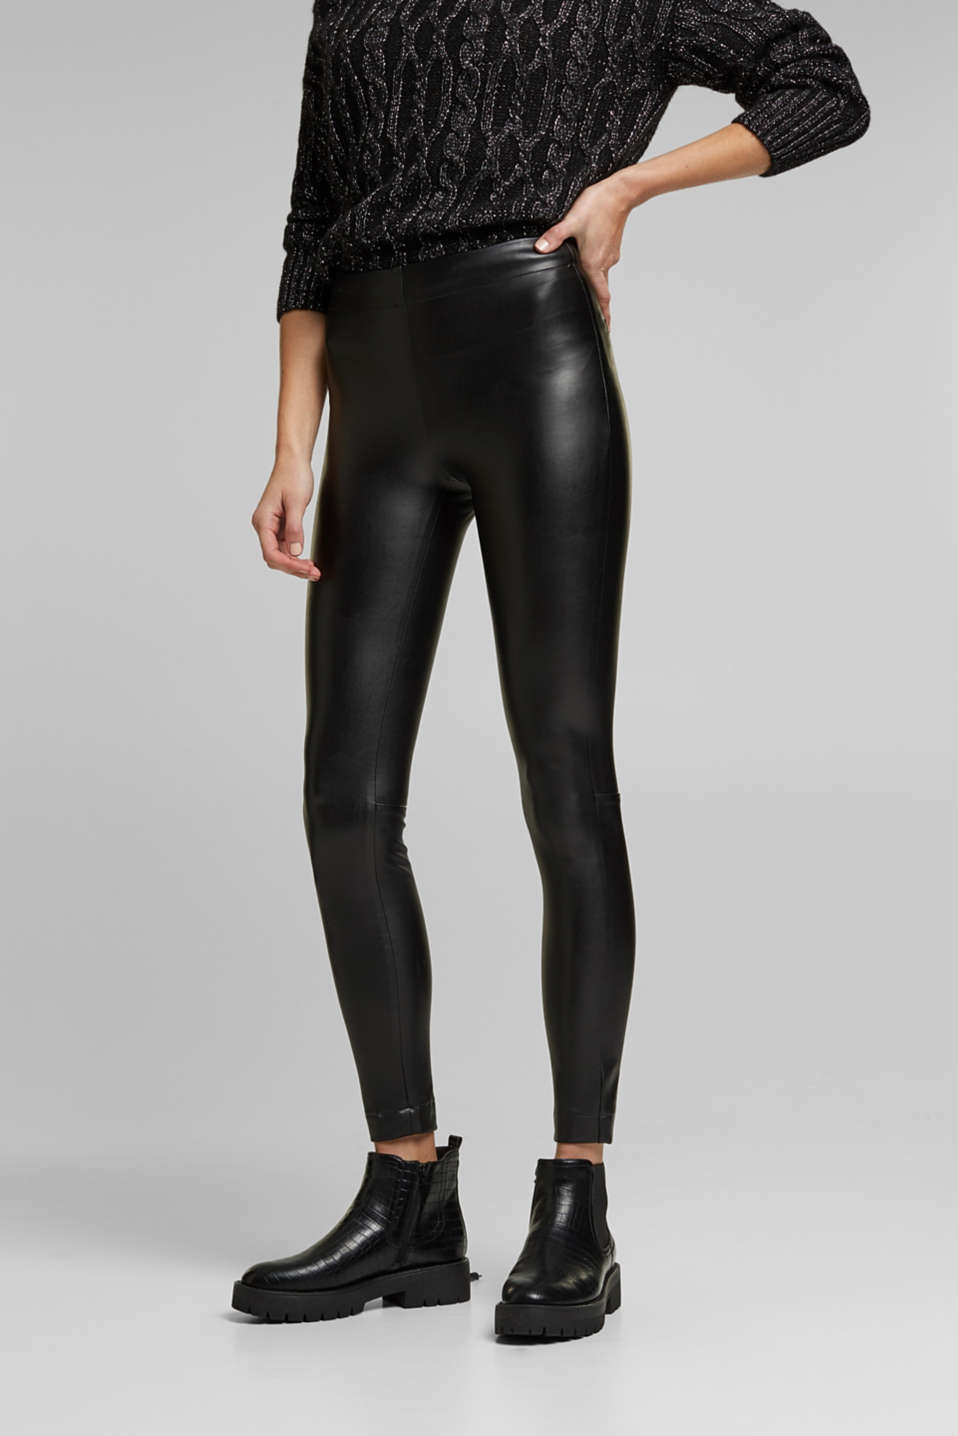 Esprit - Faux leather leggings